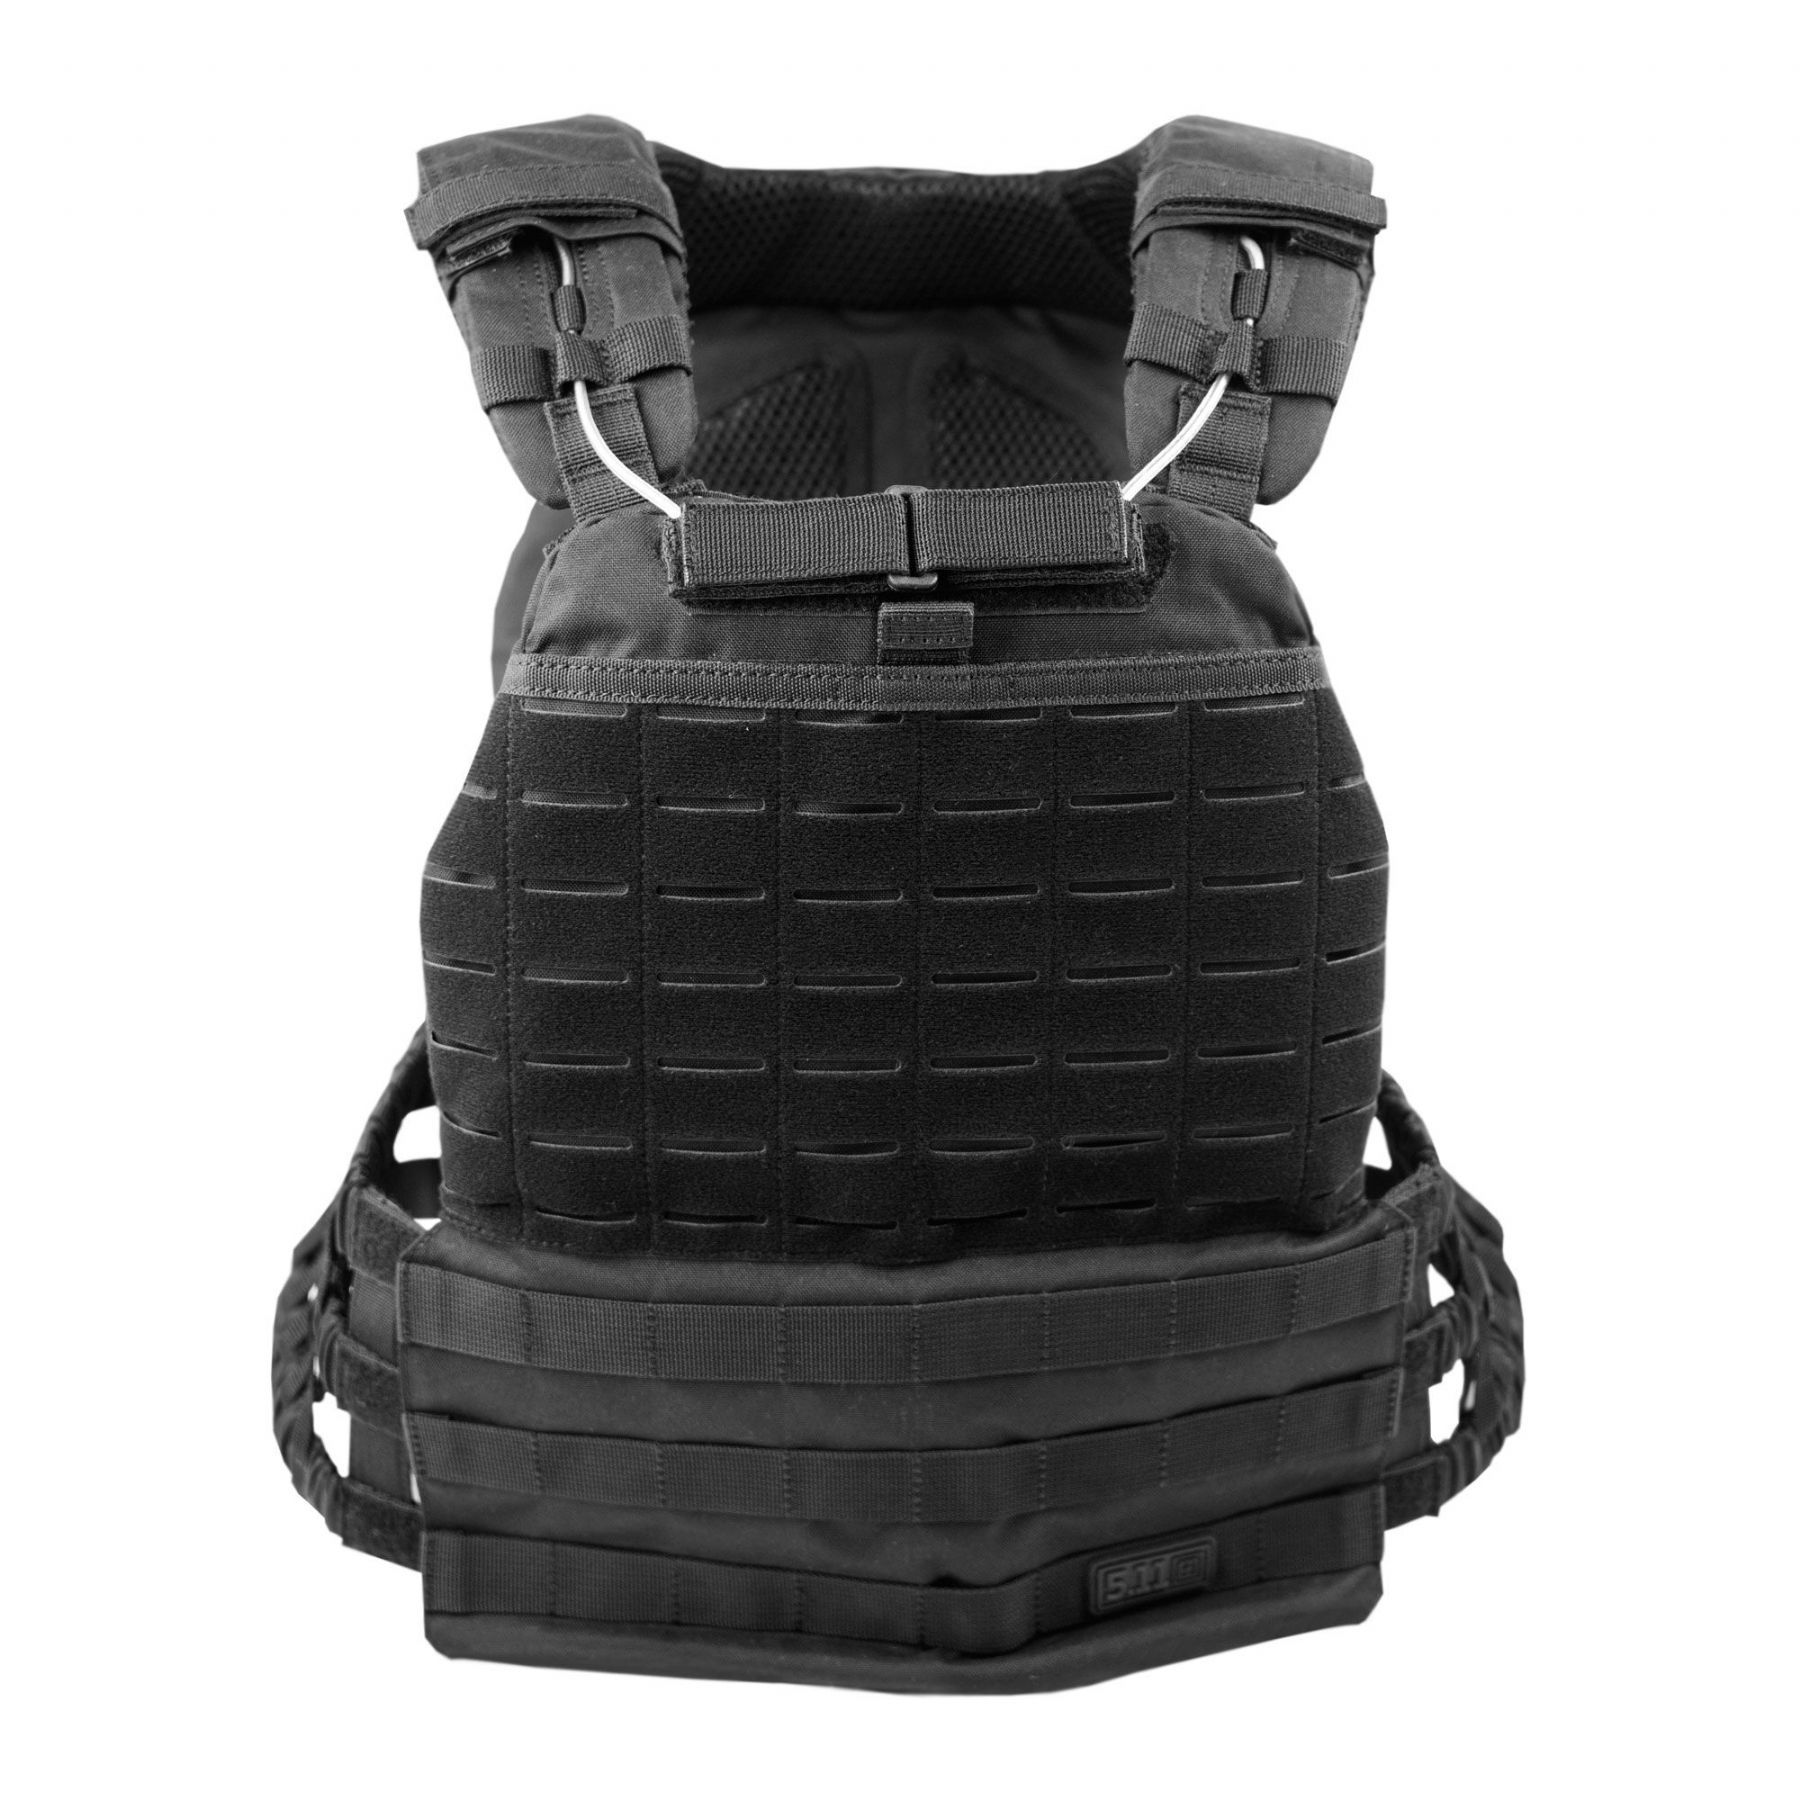 5.11 Tac Tec Plate Carrier 56100